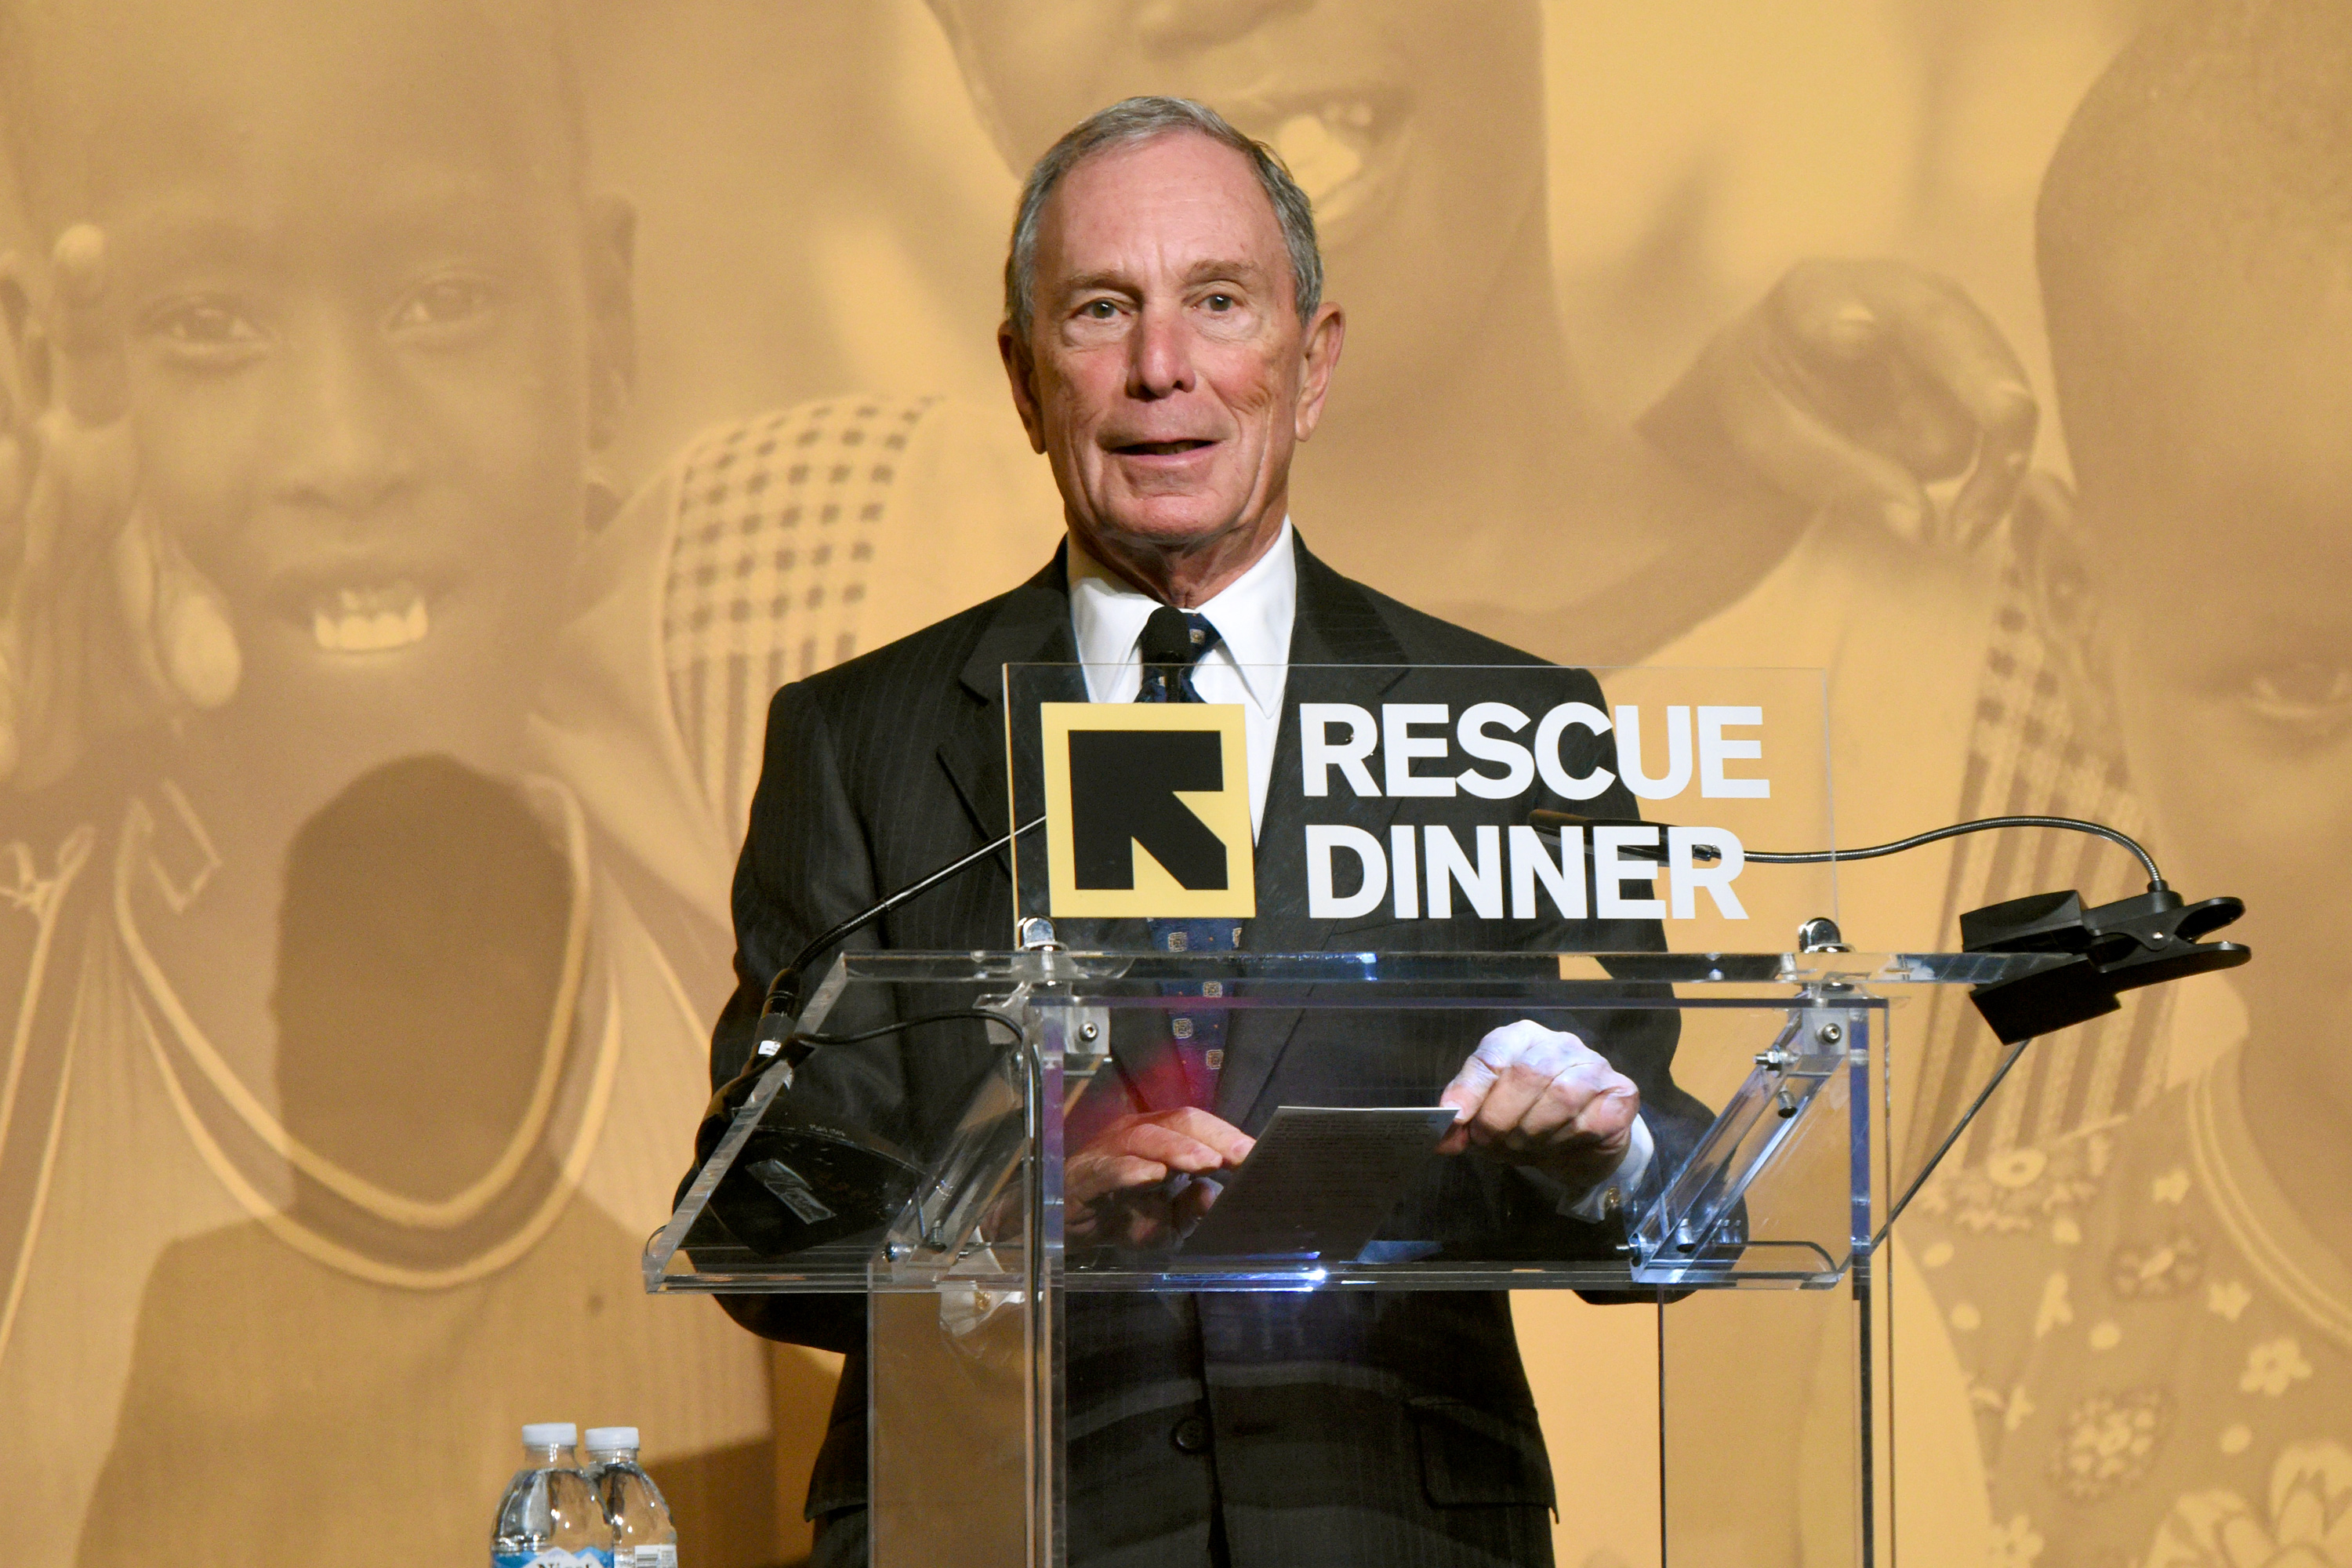 IRC Hosts The 2017 Rescue Dinner - Inside